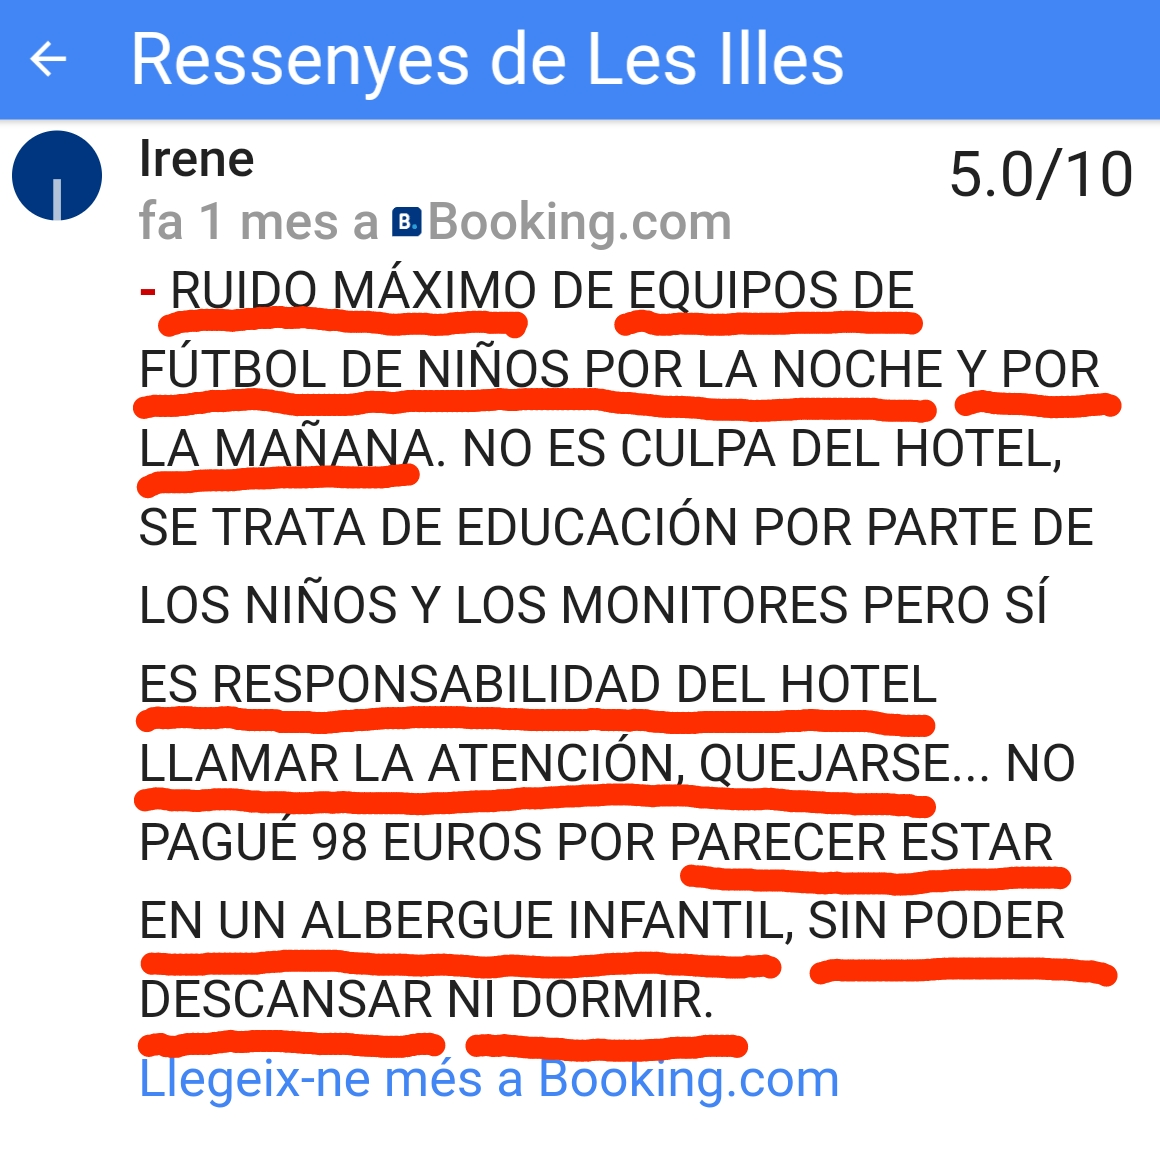 Hotel les illes booking 23